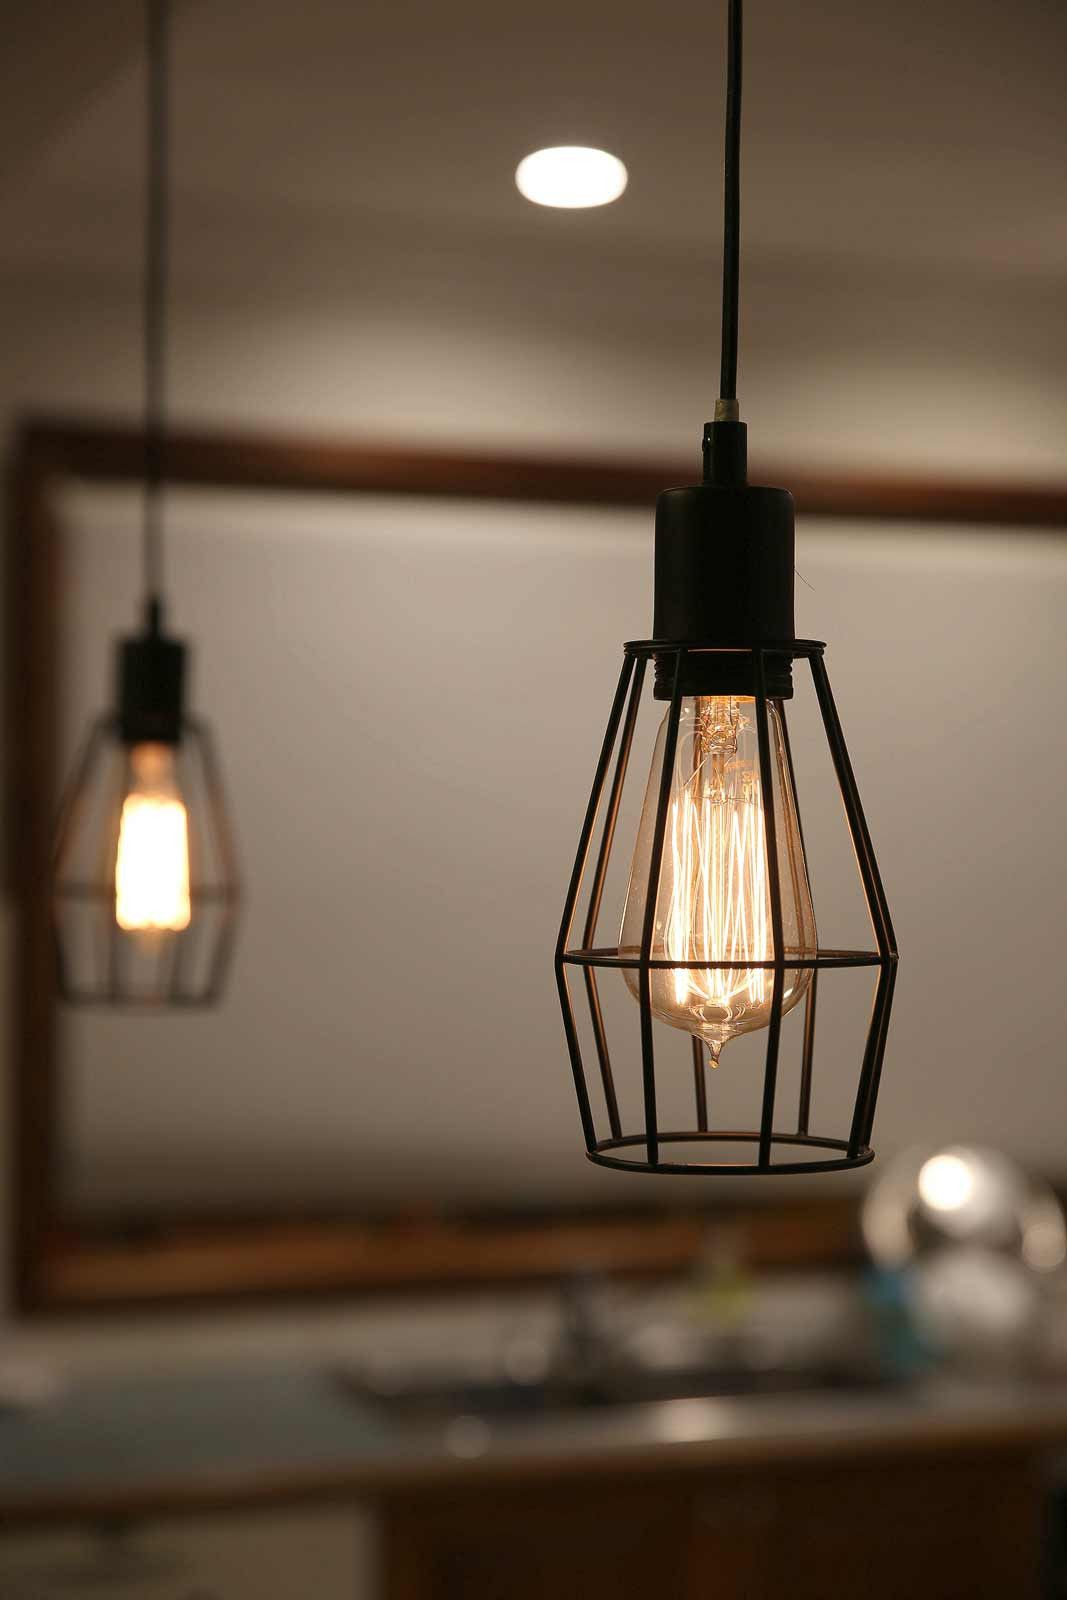 Black Industrial Cage Pendant Light for Kitchen, Dining ...